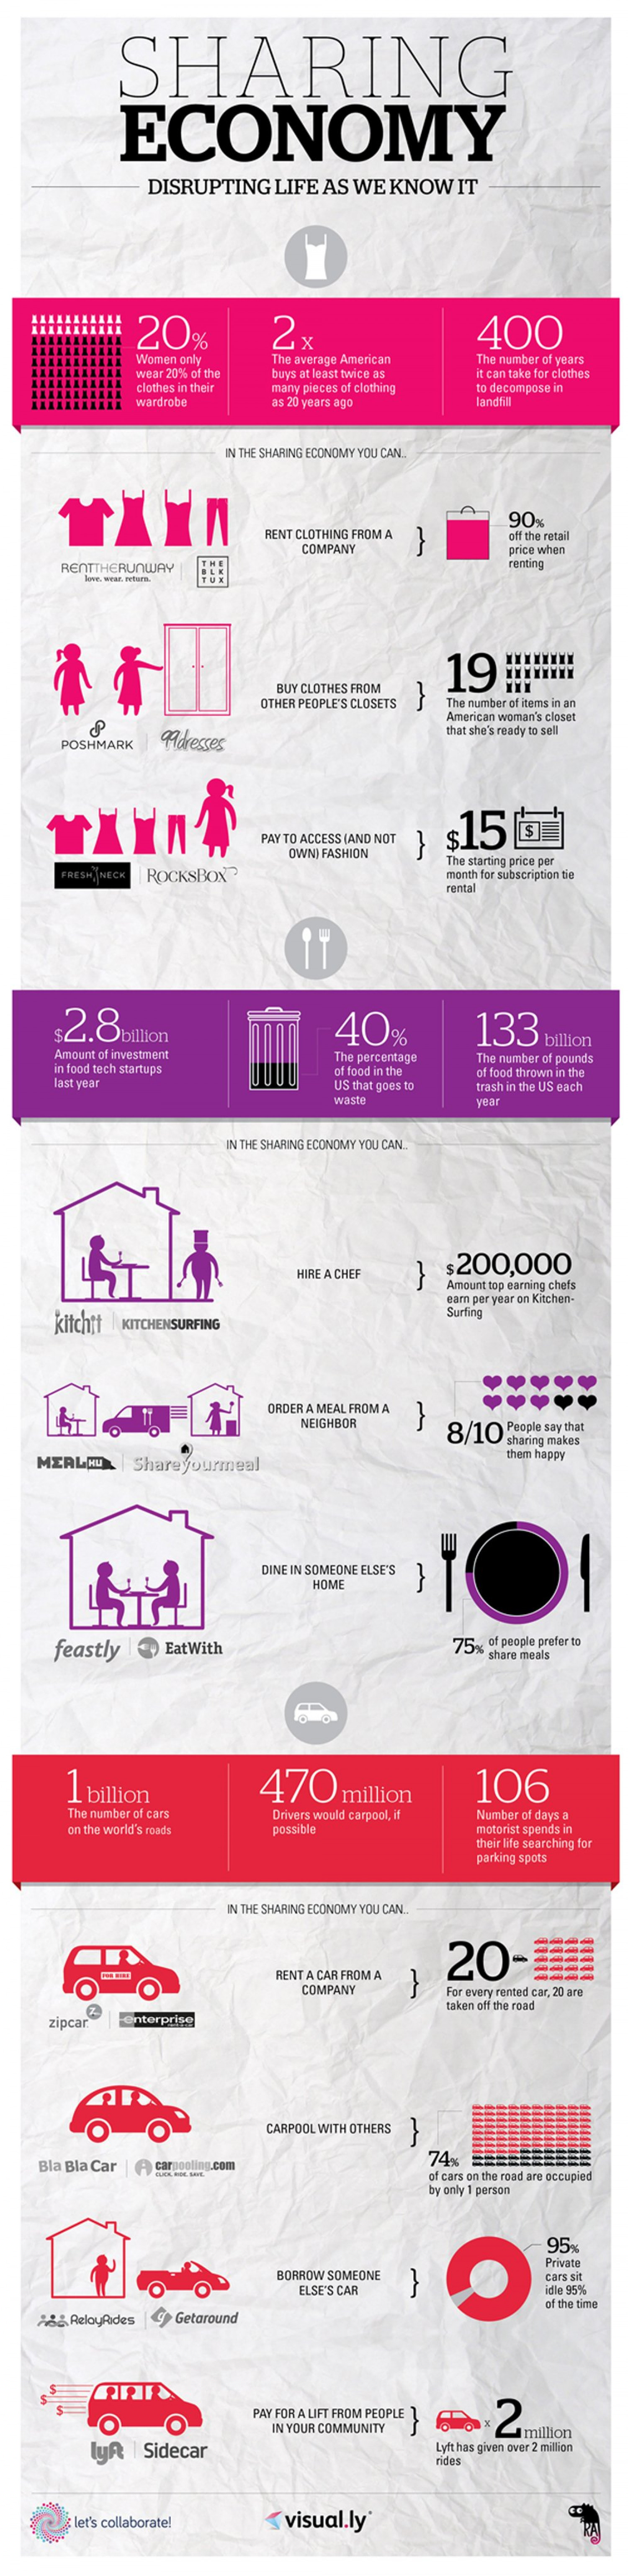 Sharing Economy: Disrupting Life As We Know It Infographic